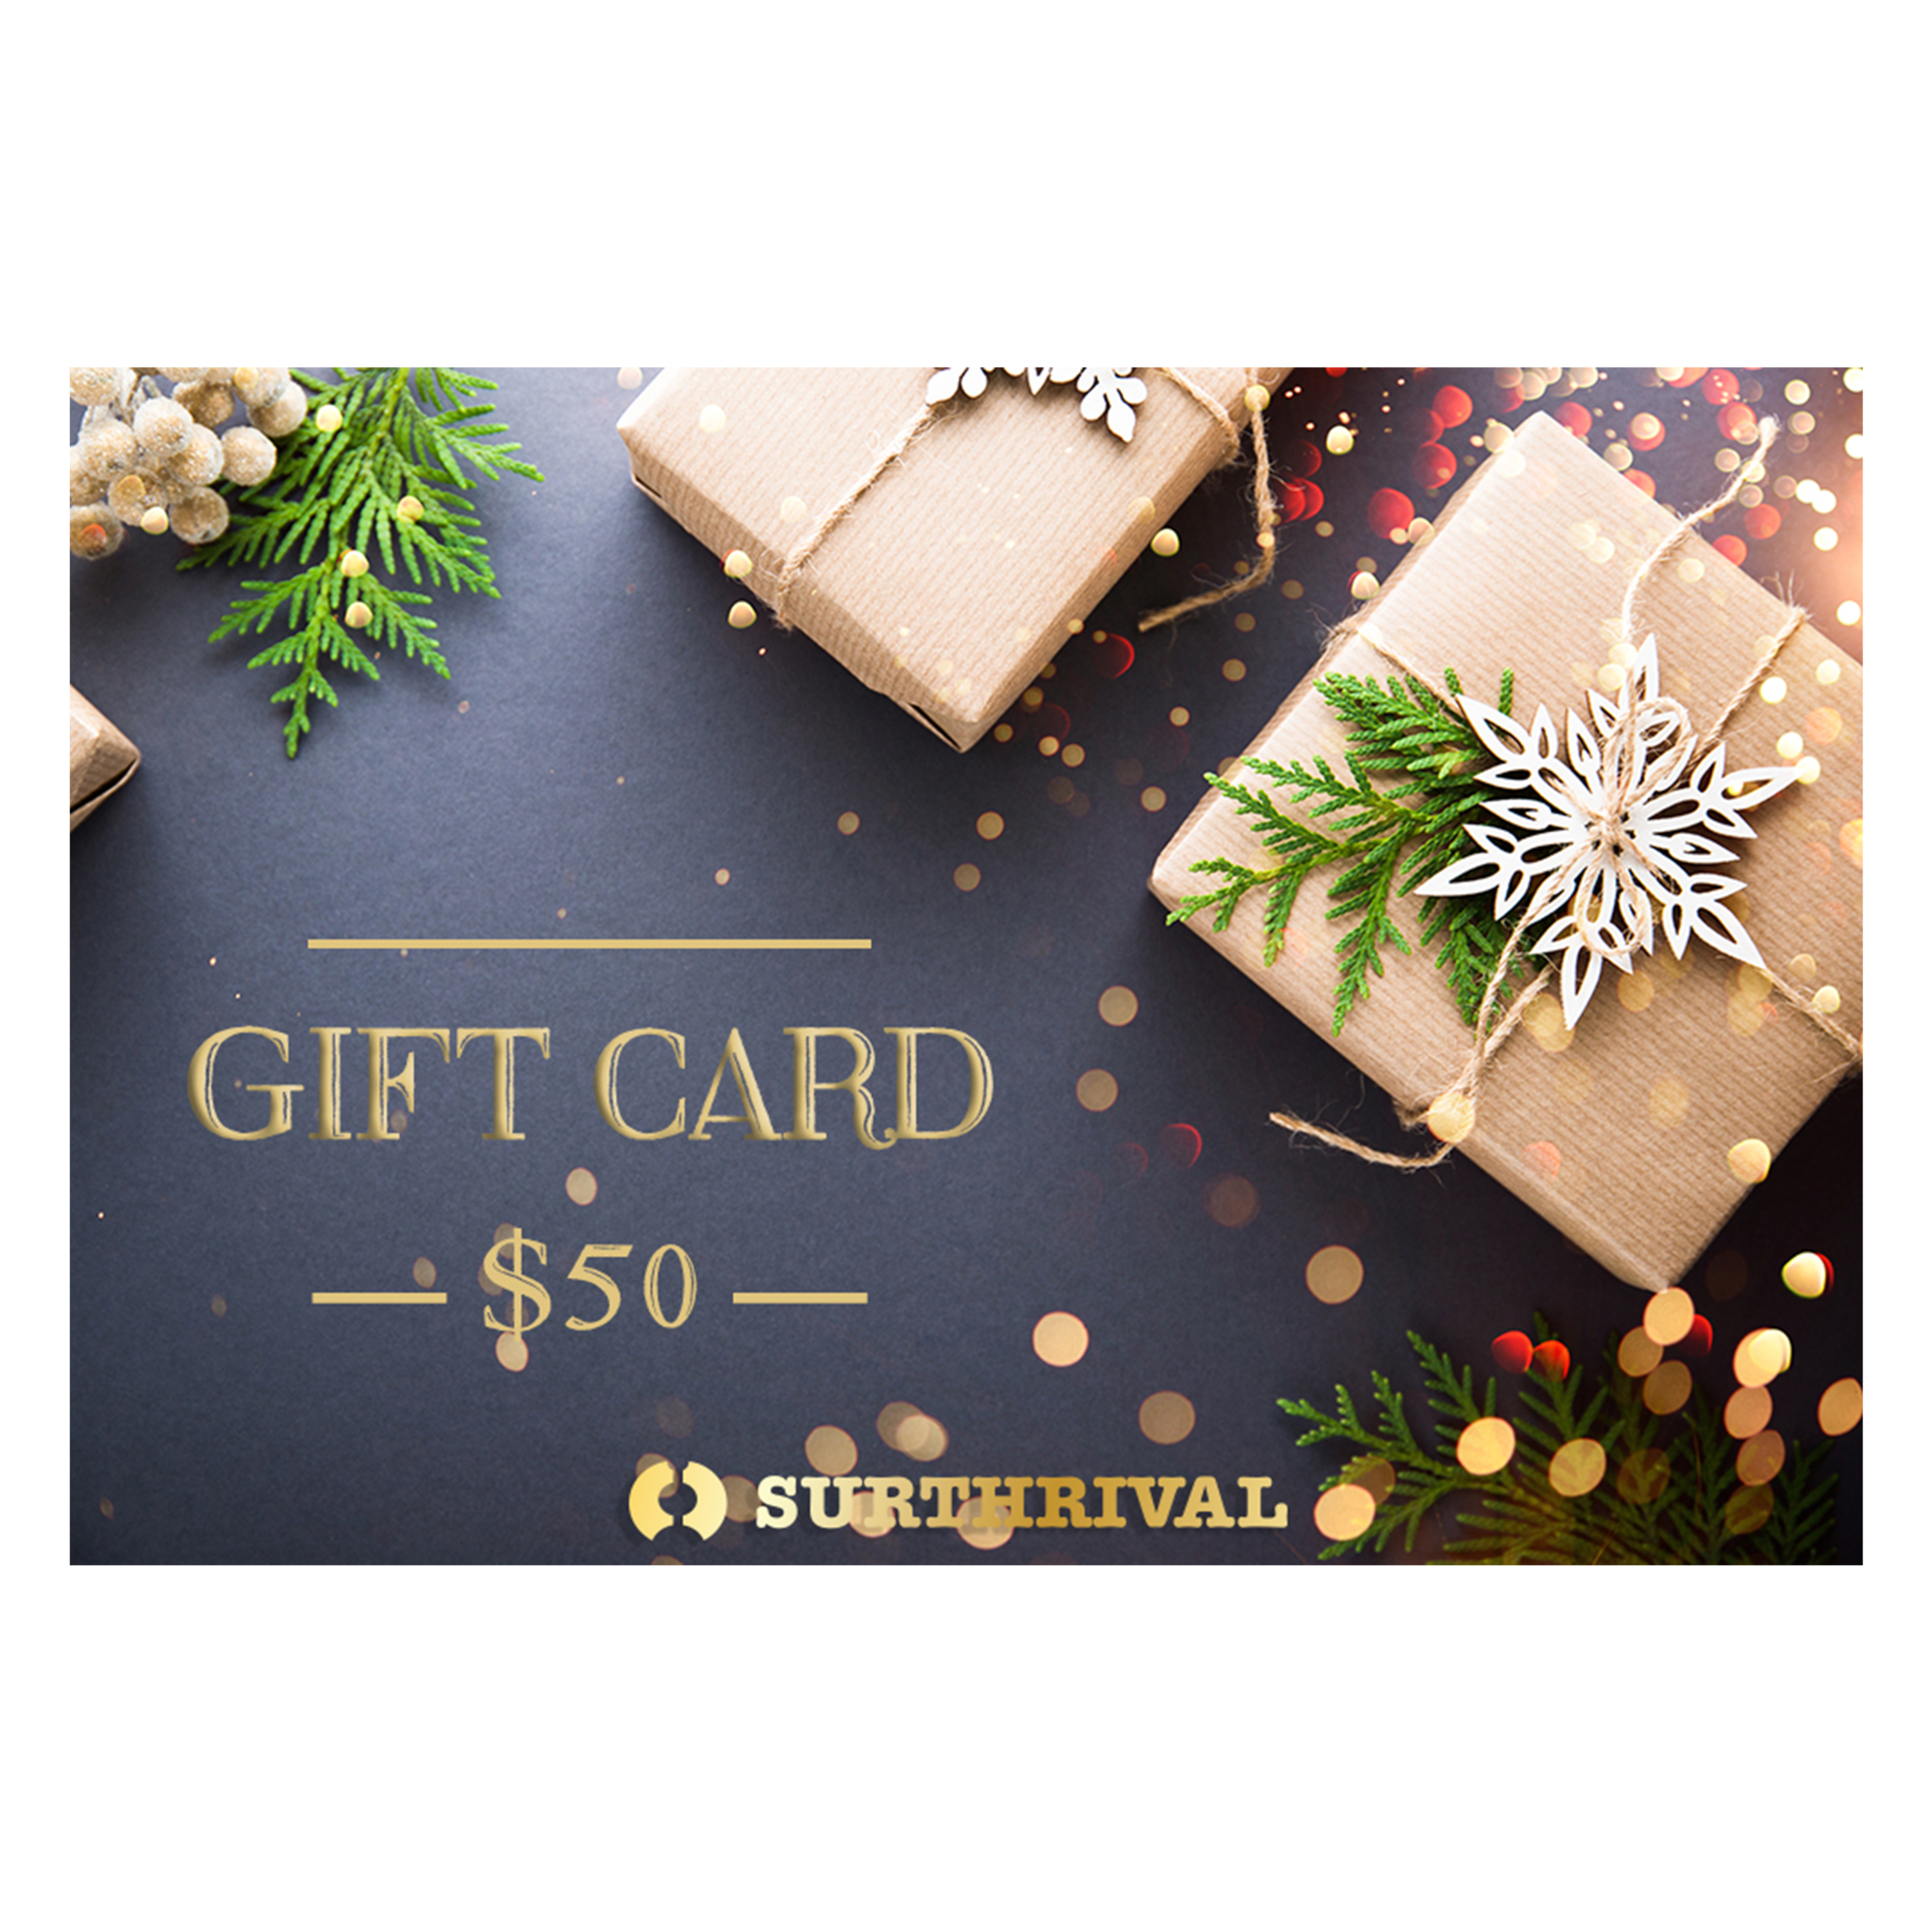 $10 png gift. Card surthrival premium supplements